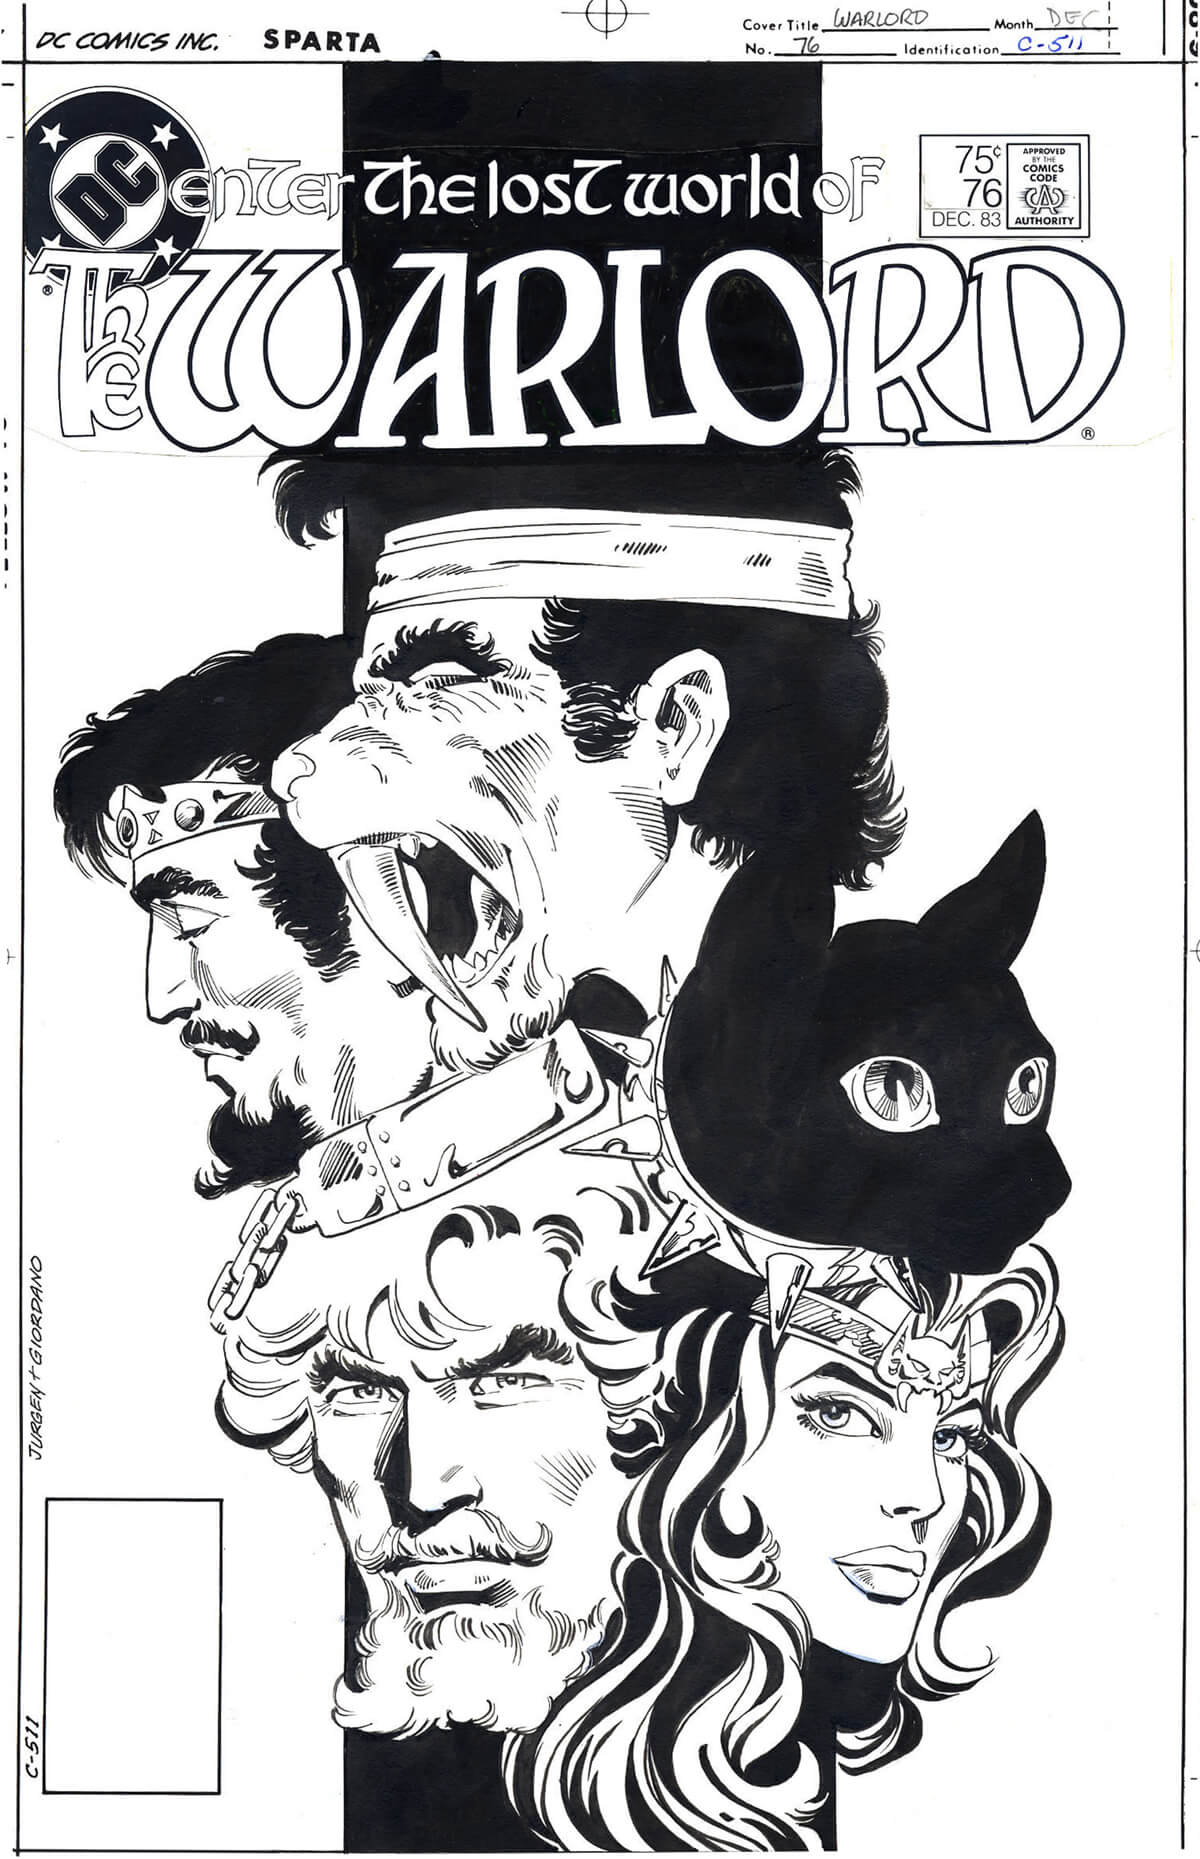 The Warlord 76 Cover by Dan Jurgens & Dick Giordano